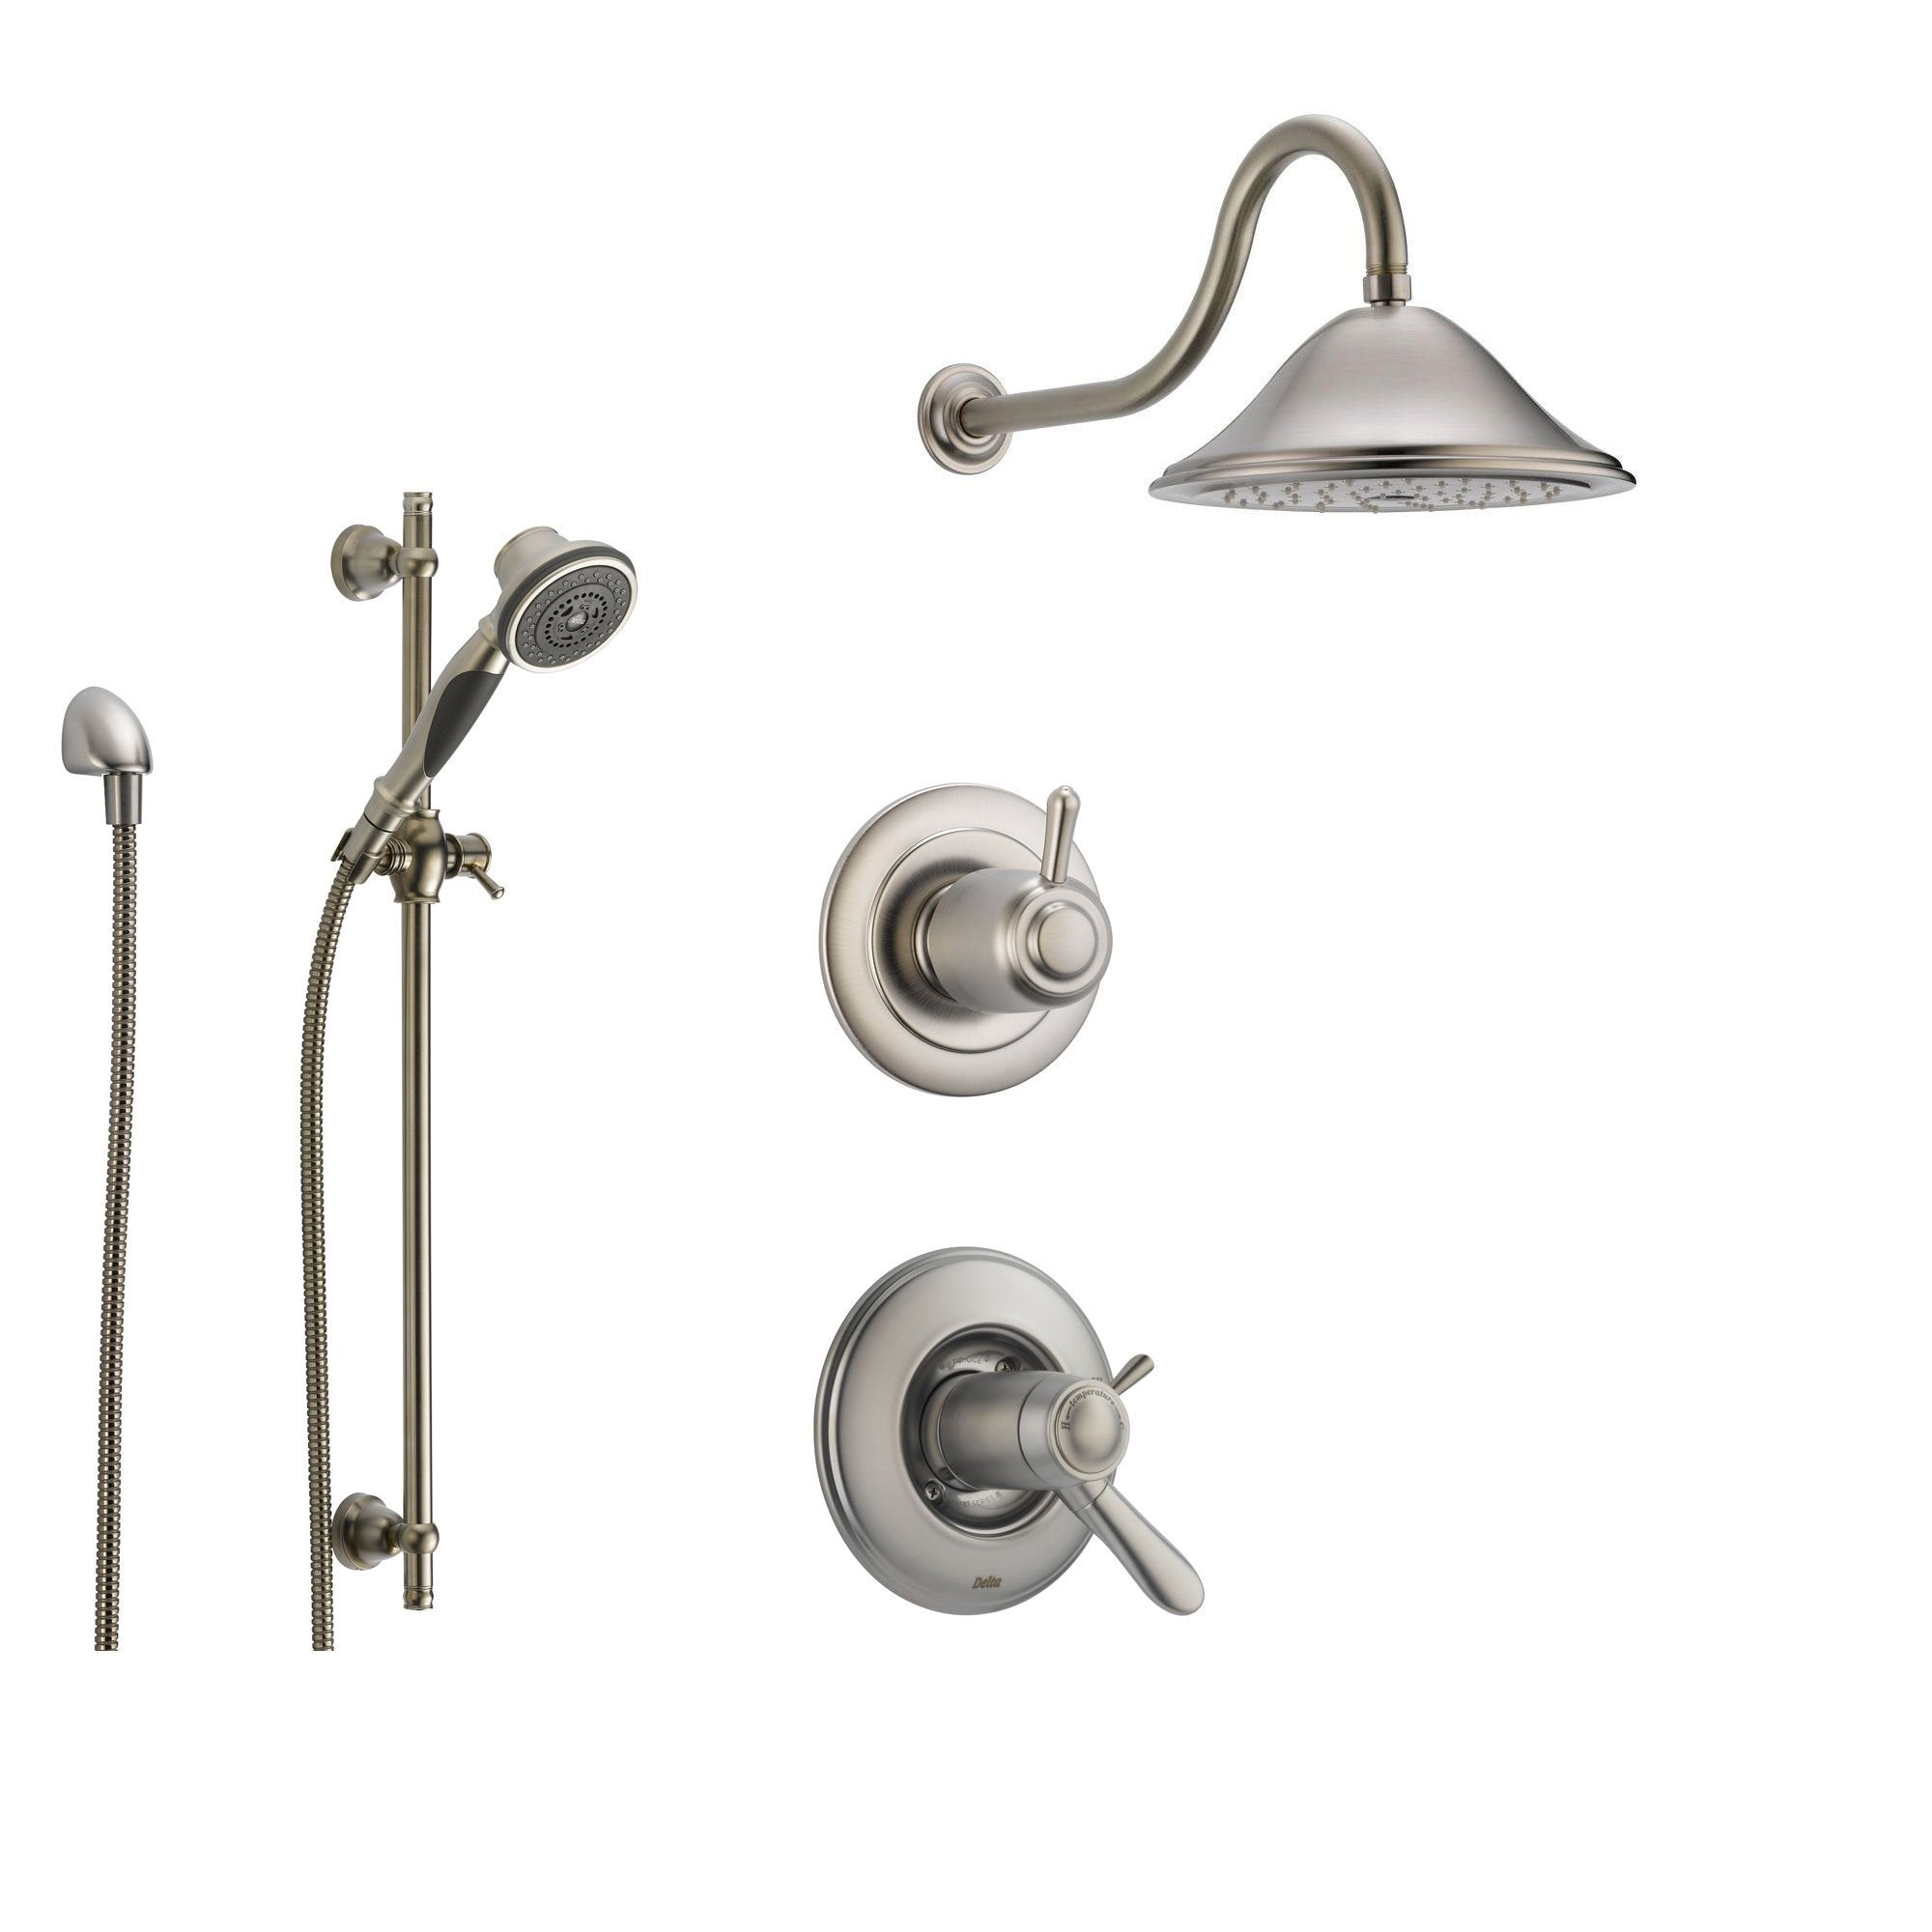 Delta Lahara Stainless Steel Shower System with Thermostatic Shower Handle, 3-setting Diverter, Large Rain Showerhead, and Handheld Shower SS17T3884SS